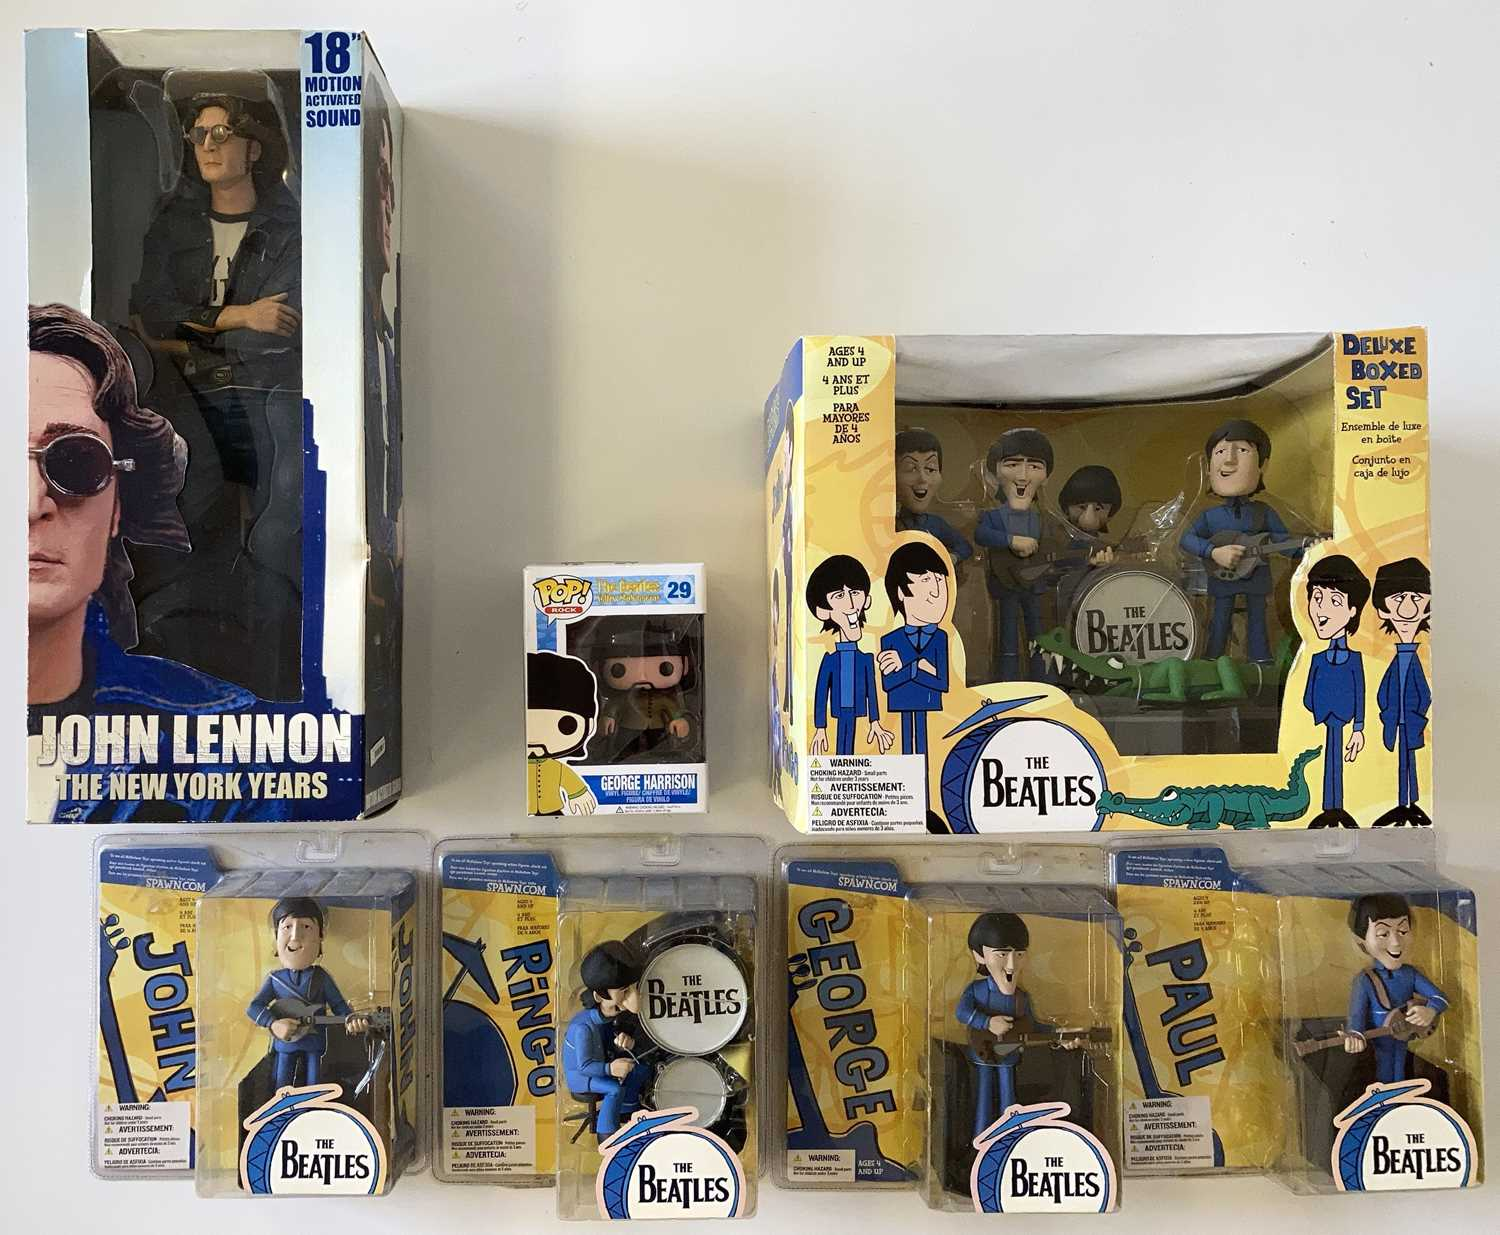 THE BEATLES FIGURINES AND TOYS IN BOXES.